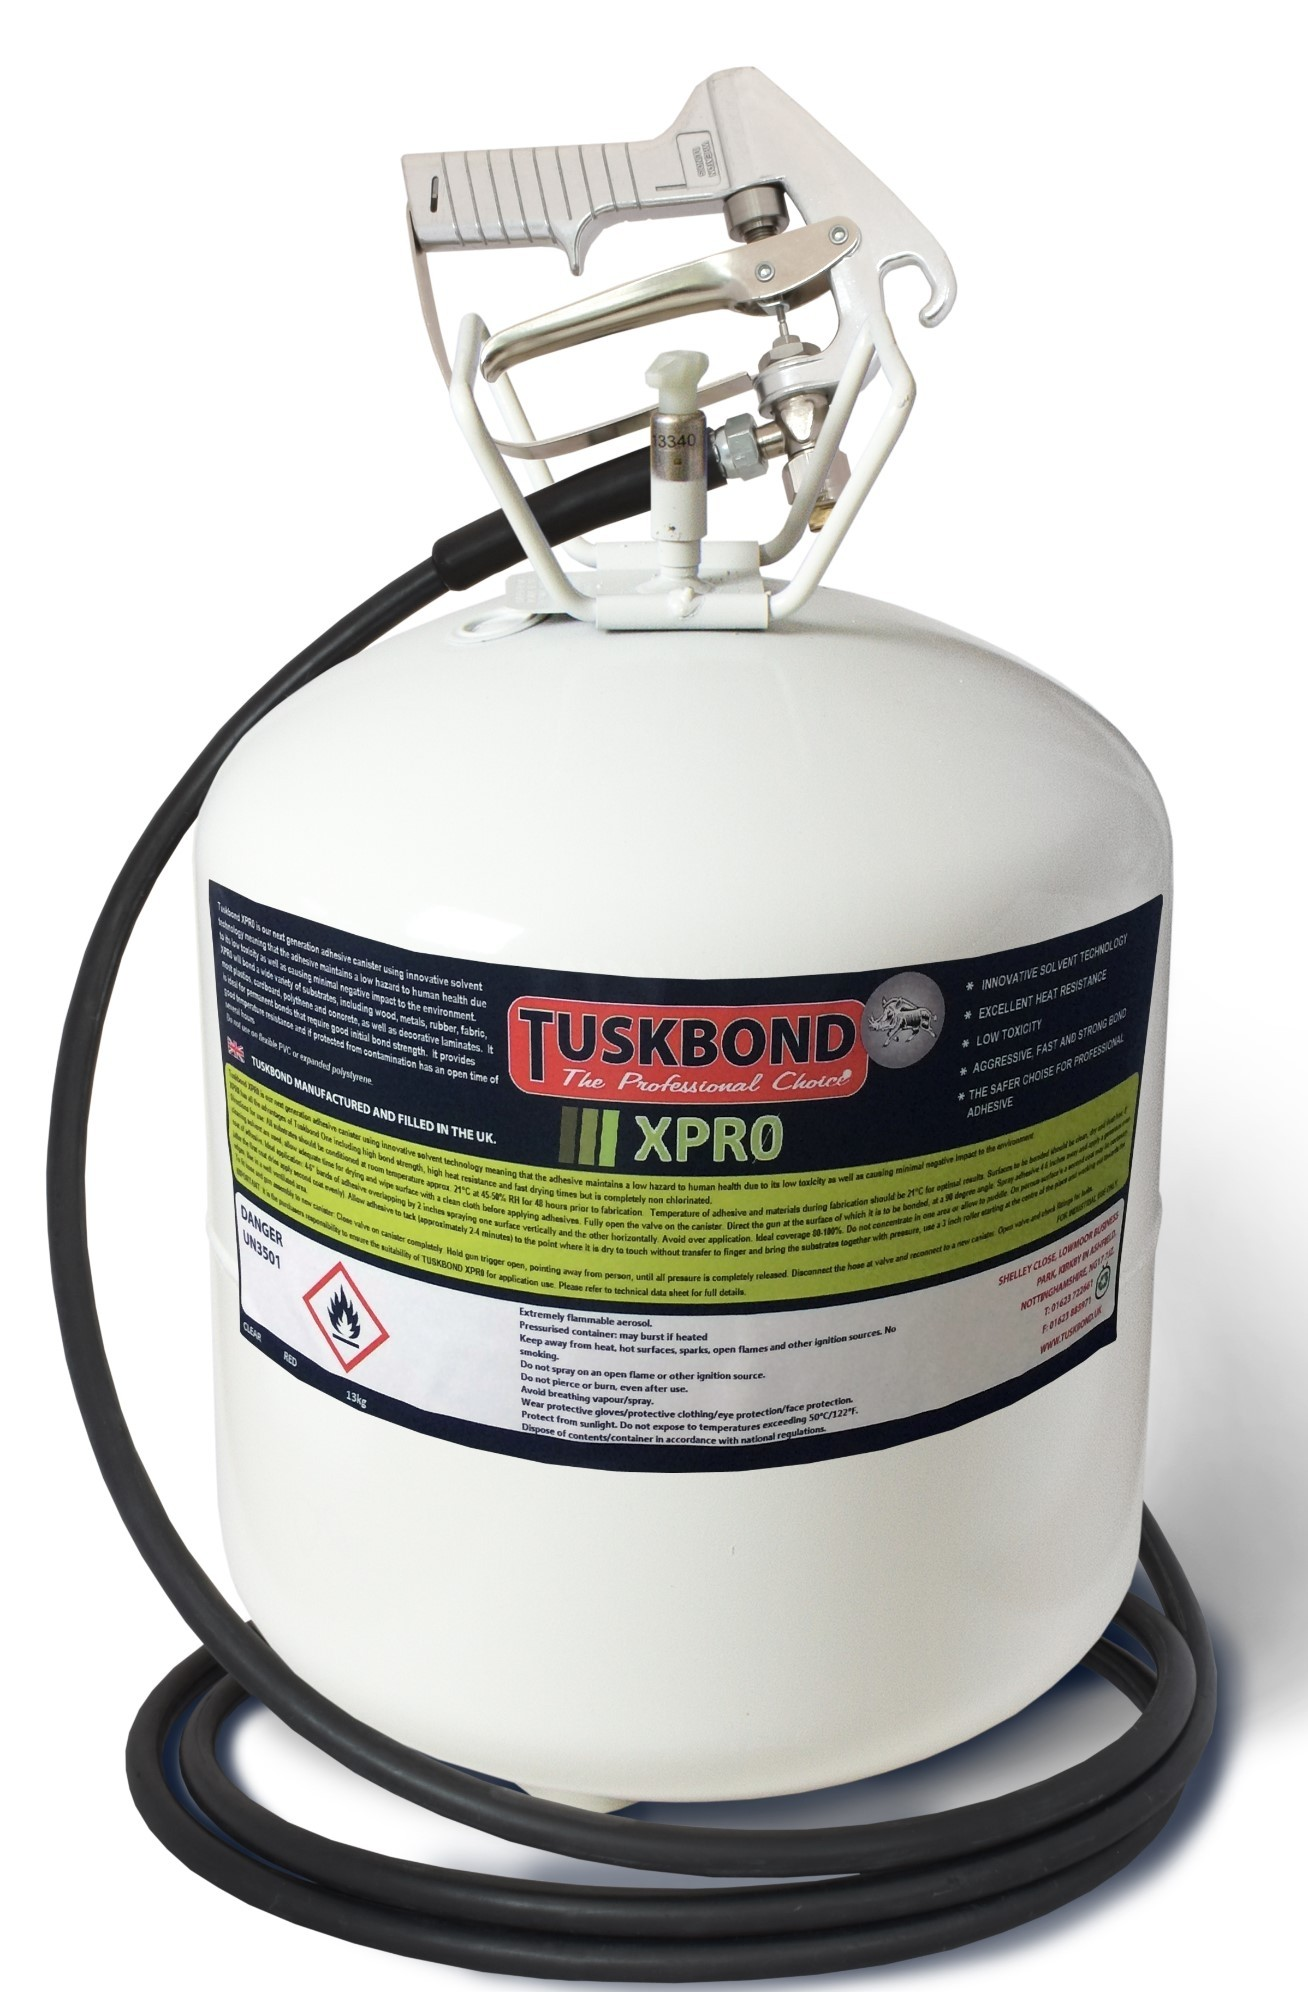 Tuskbond XPRO Spray Contact Adhesive 13kg